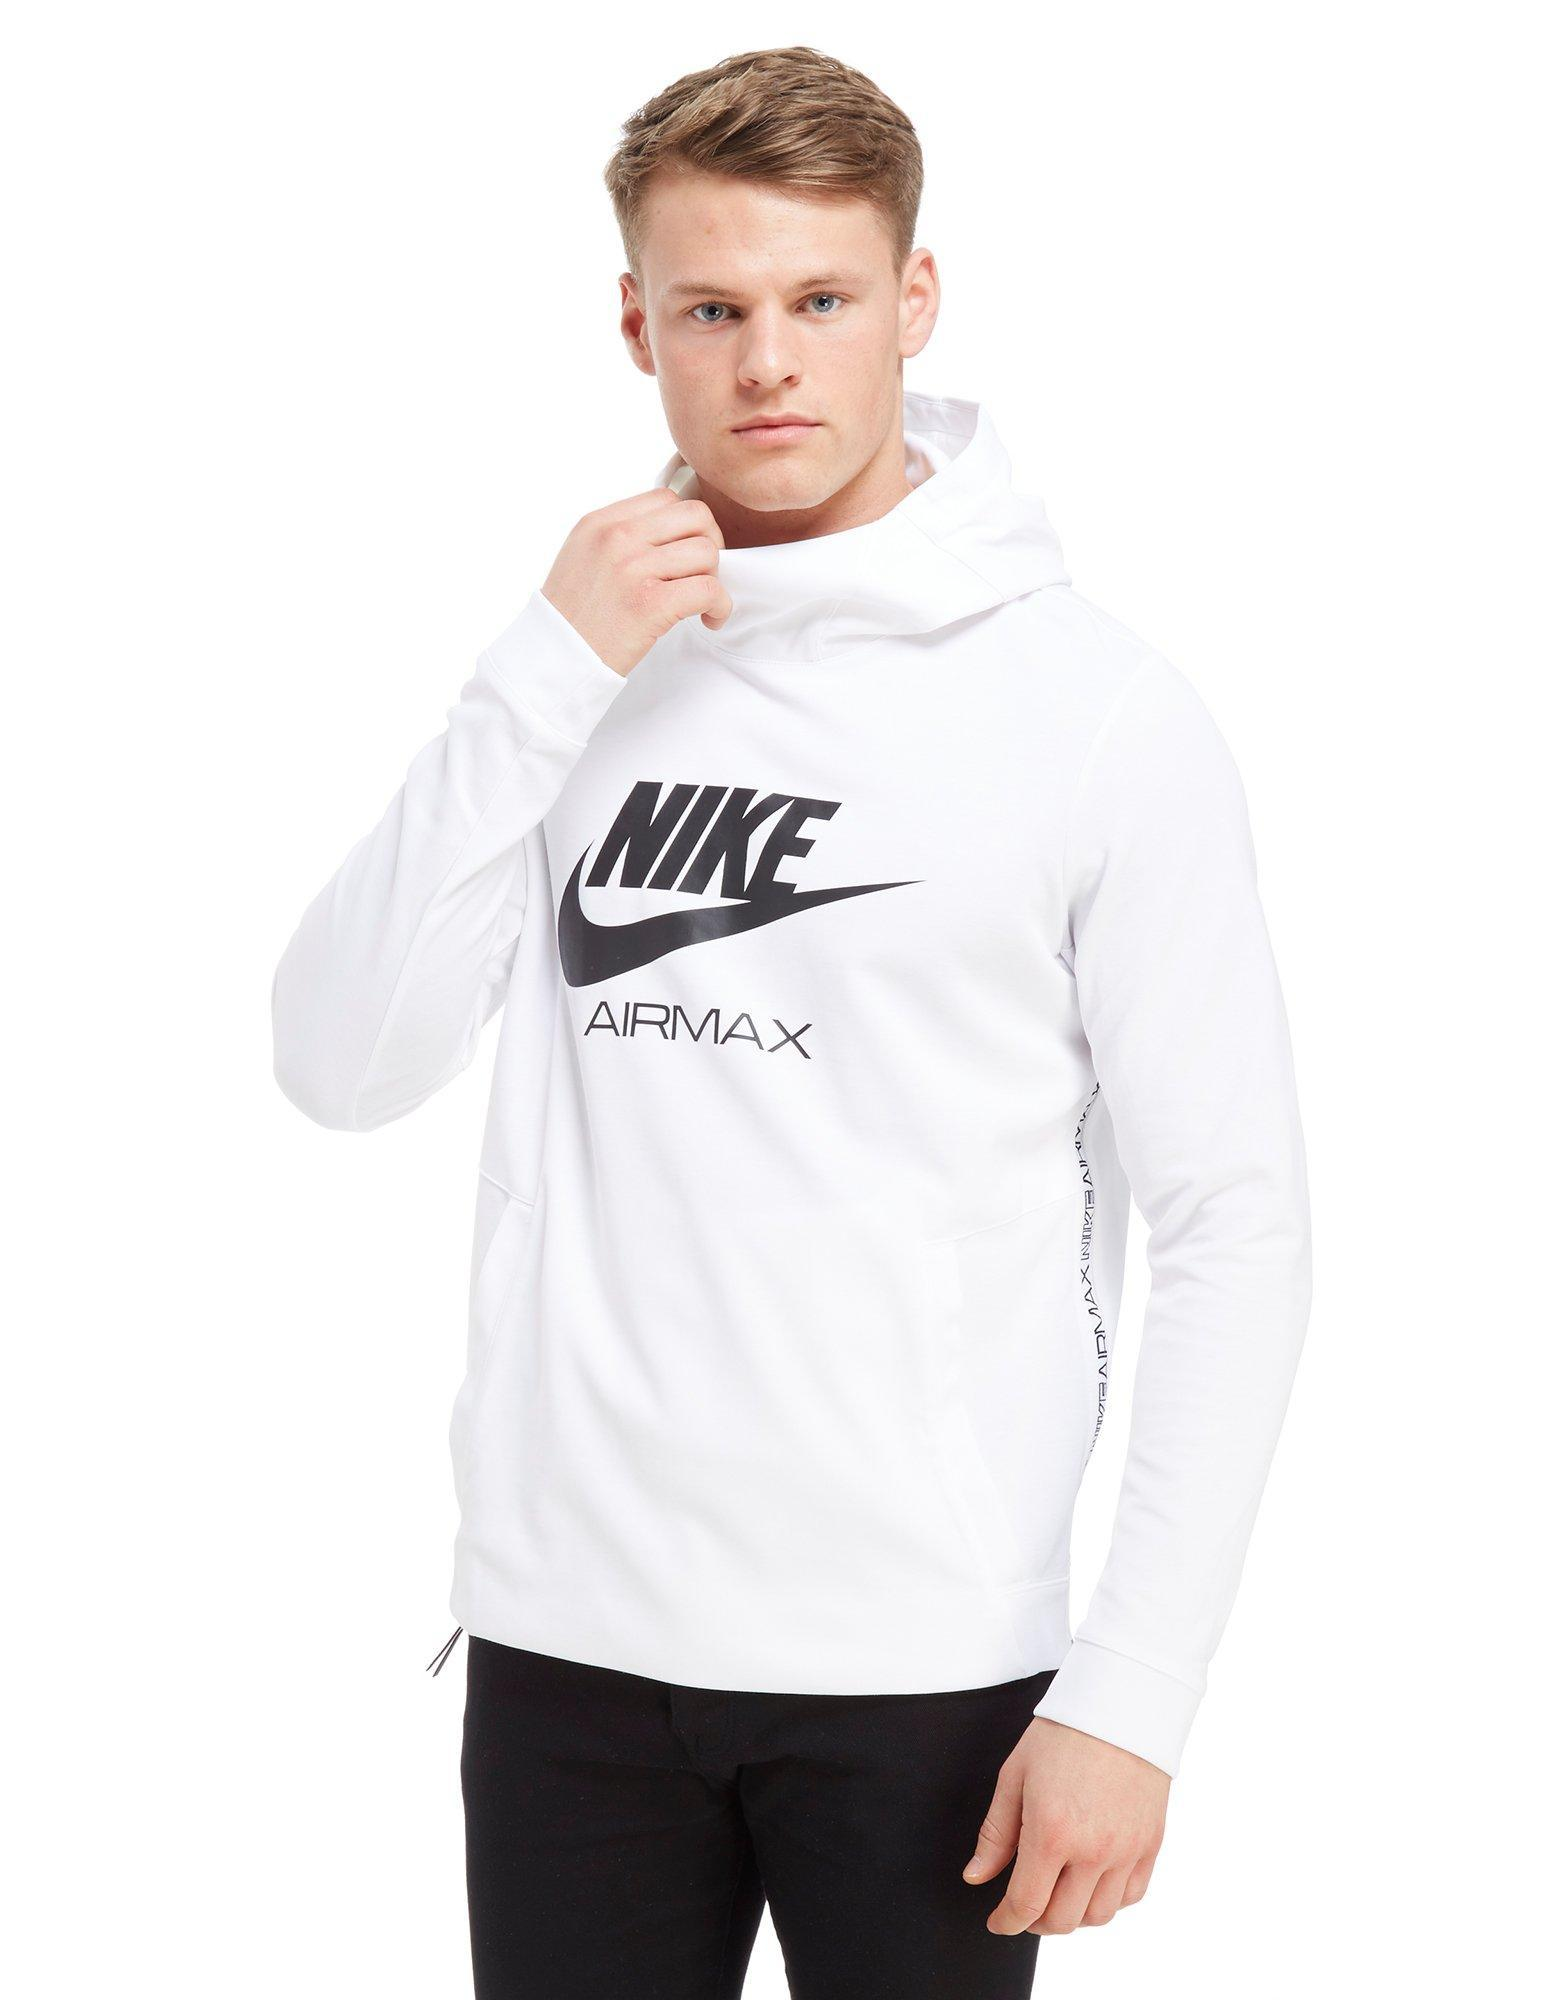 pretty nice great look stable quality nike air max hoody